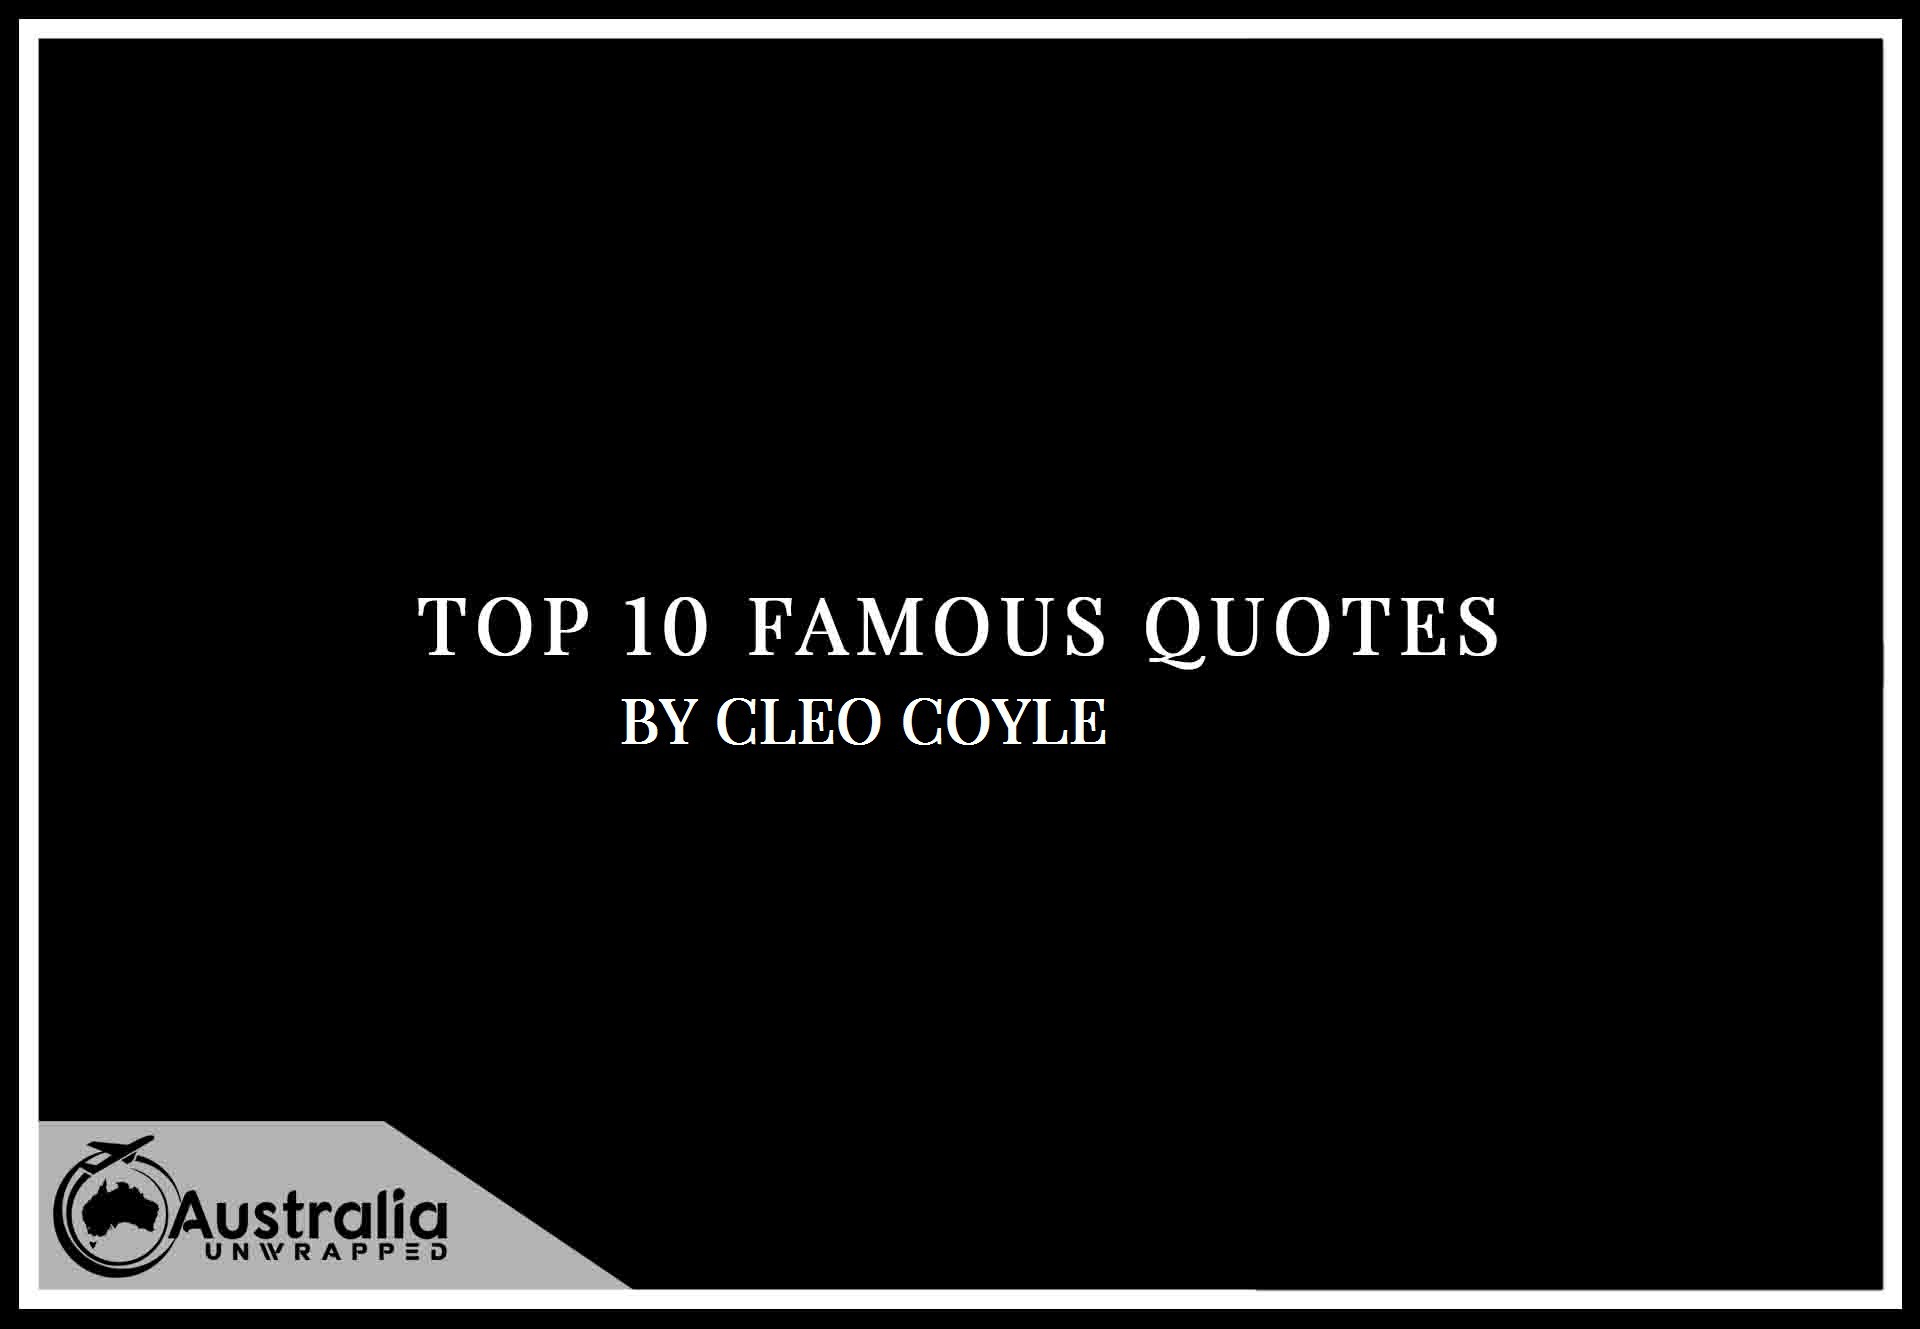 Cleo Coyle's Top 10 Popular and Famous Quotes